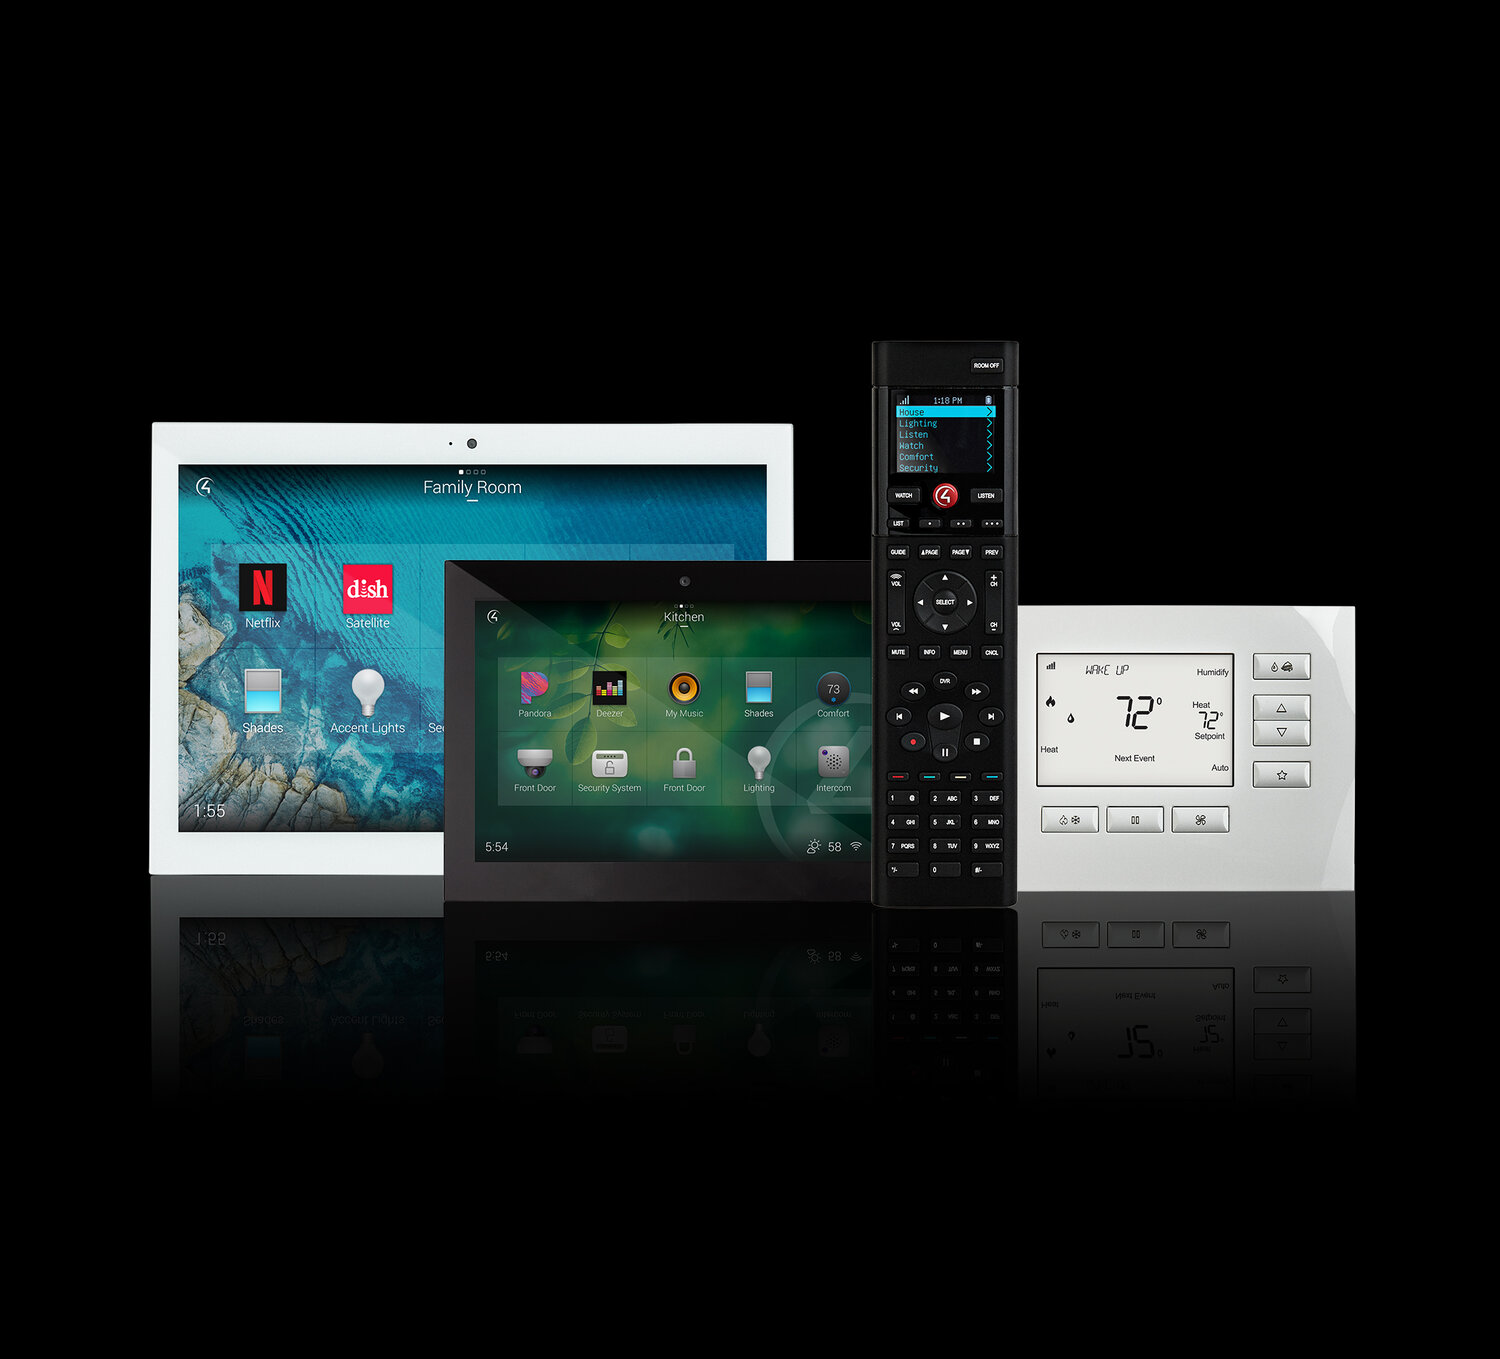 C4_Images_Product_Studio_Touch_ Touch_Screen_BG.jpg